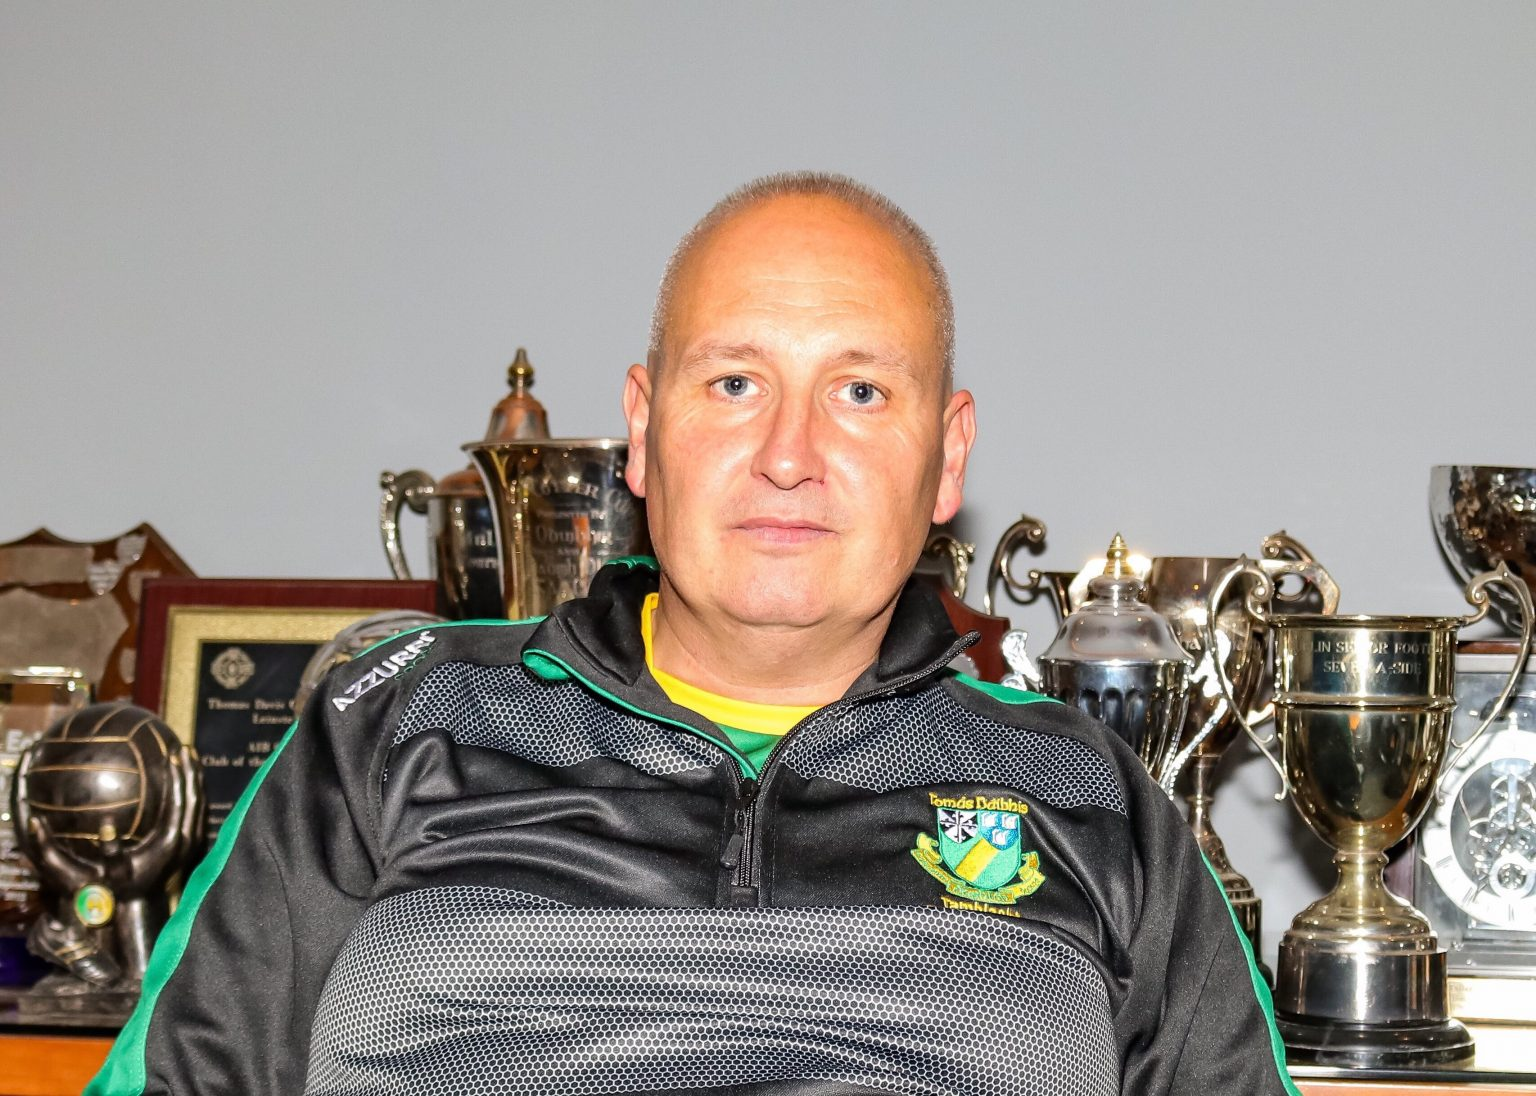 Dublin U16 Camogie Manager Jonny Jackson in a black and grey top is seeking player nominations for upcoming trials